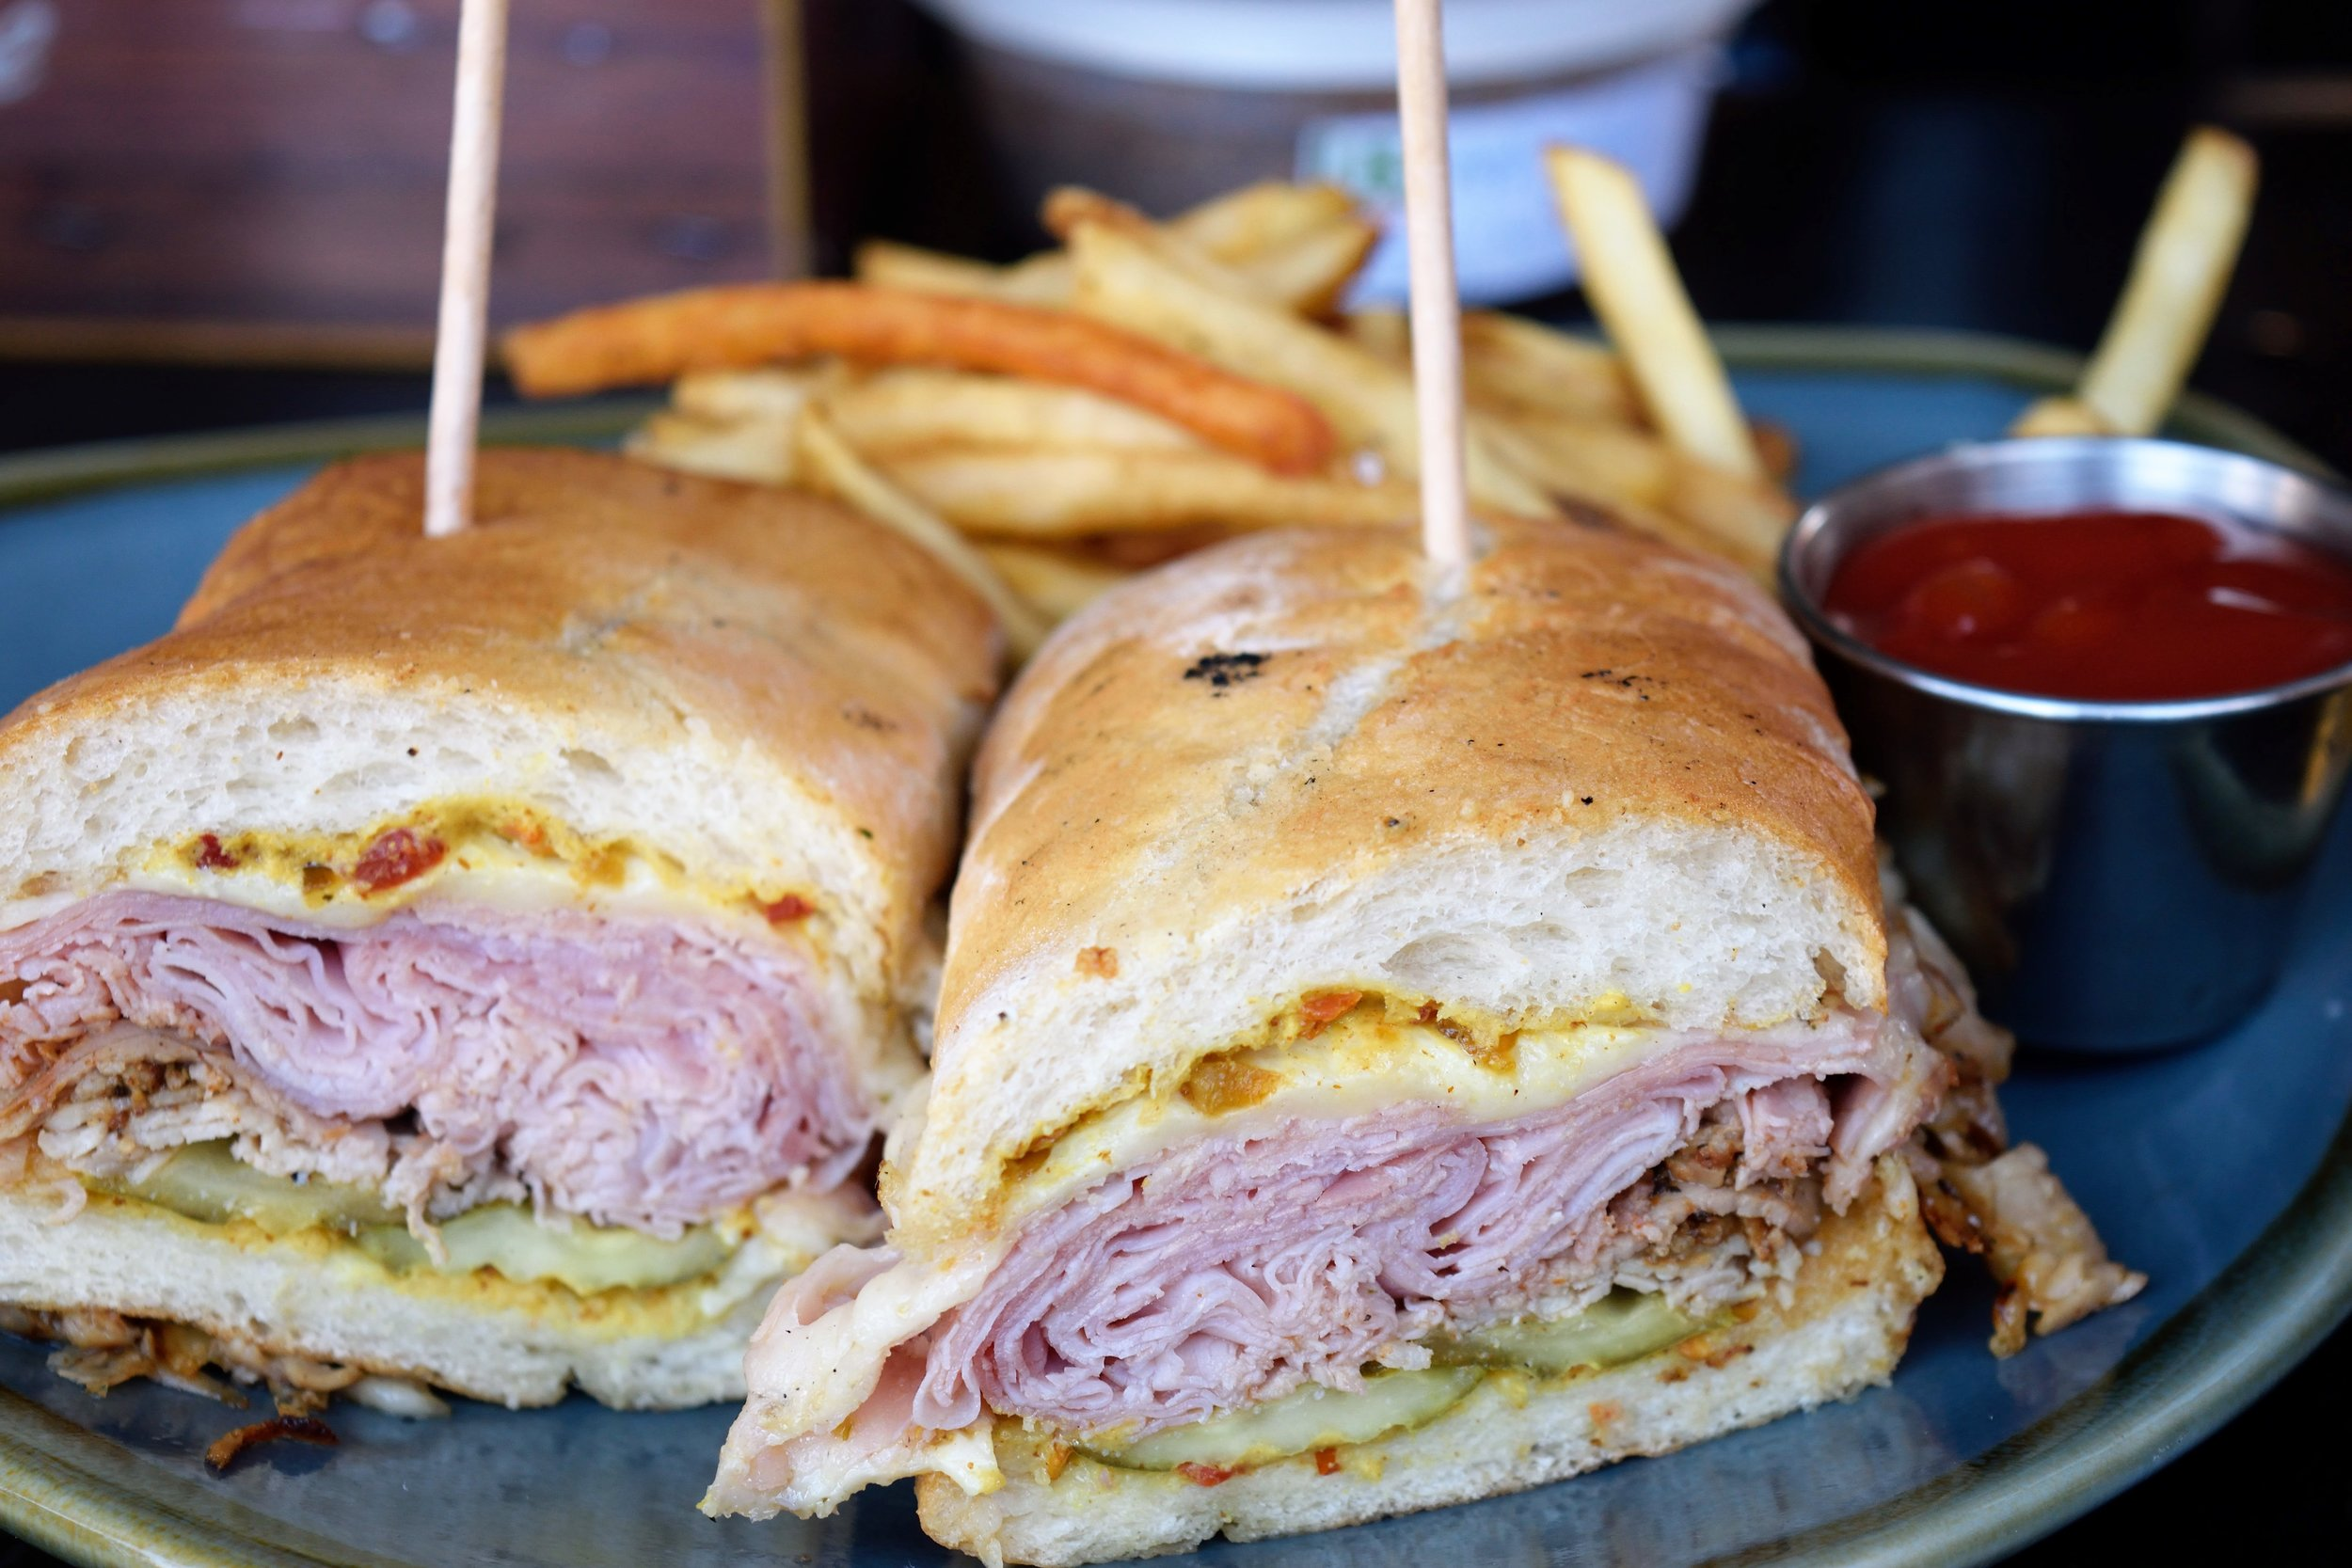 Cuban sandwich - the pickles really made this shine WAY more!